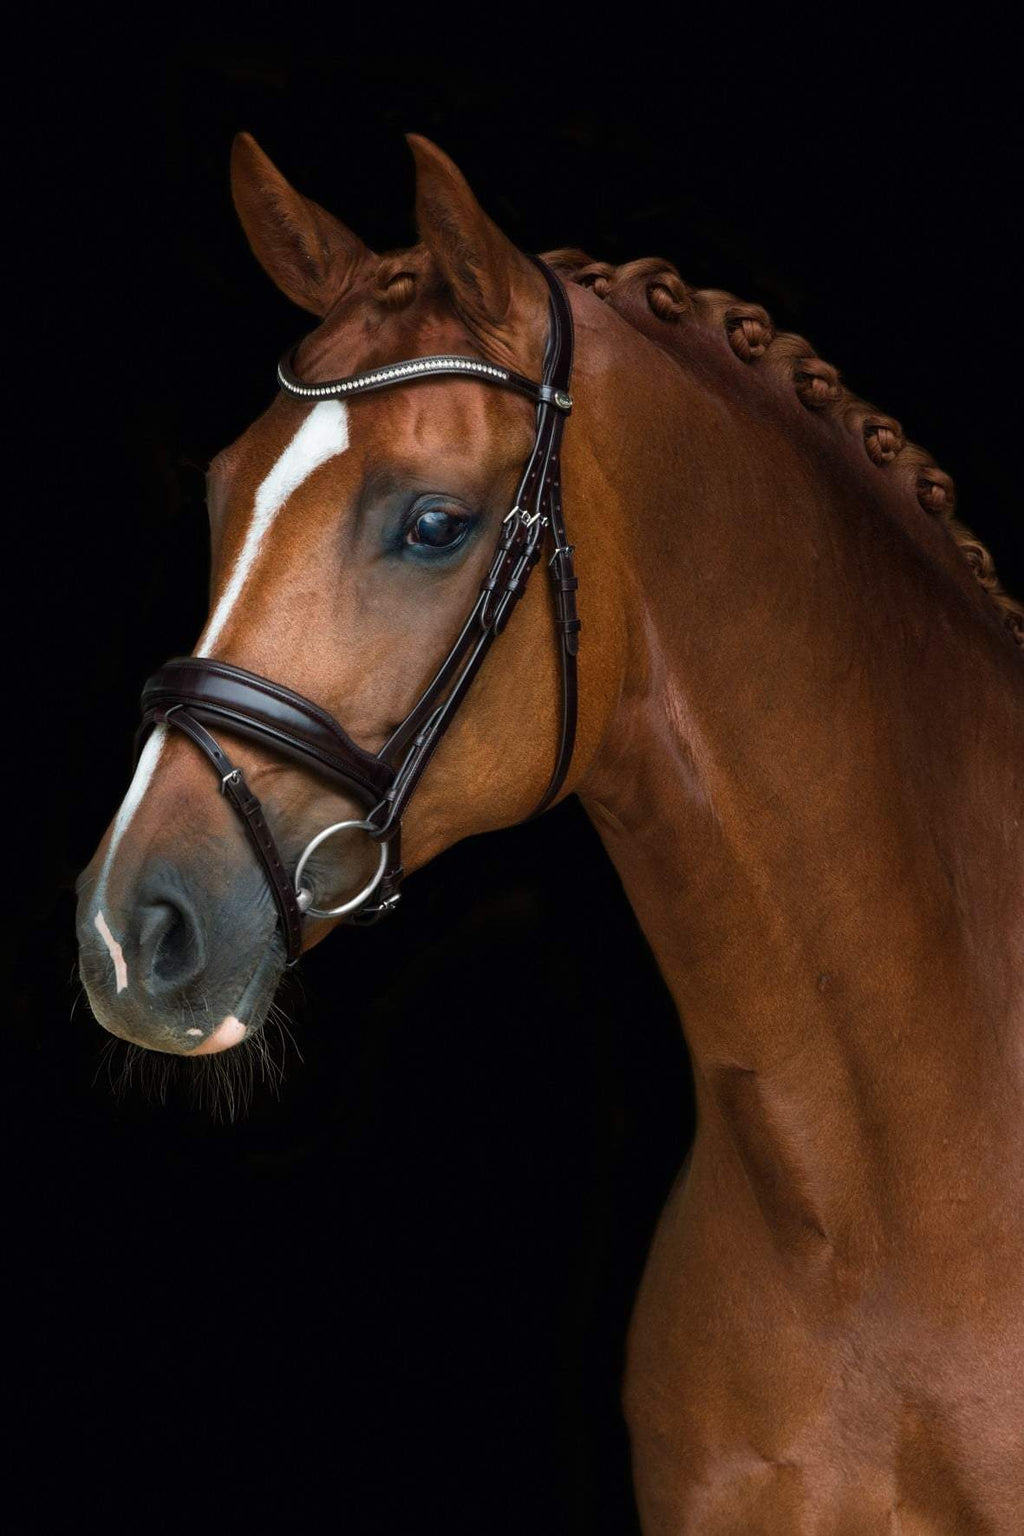 Shop Schockemohle Stanford Dressage Bridle | Shop Schockemohle Sports Brand Products – Malvern Saddlery. - Malvern Saddlery